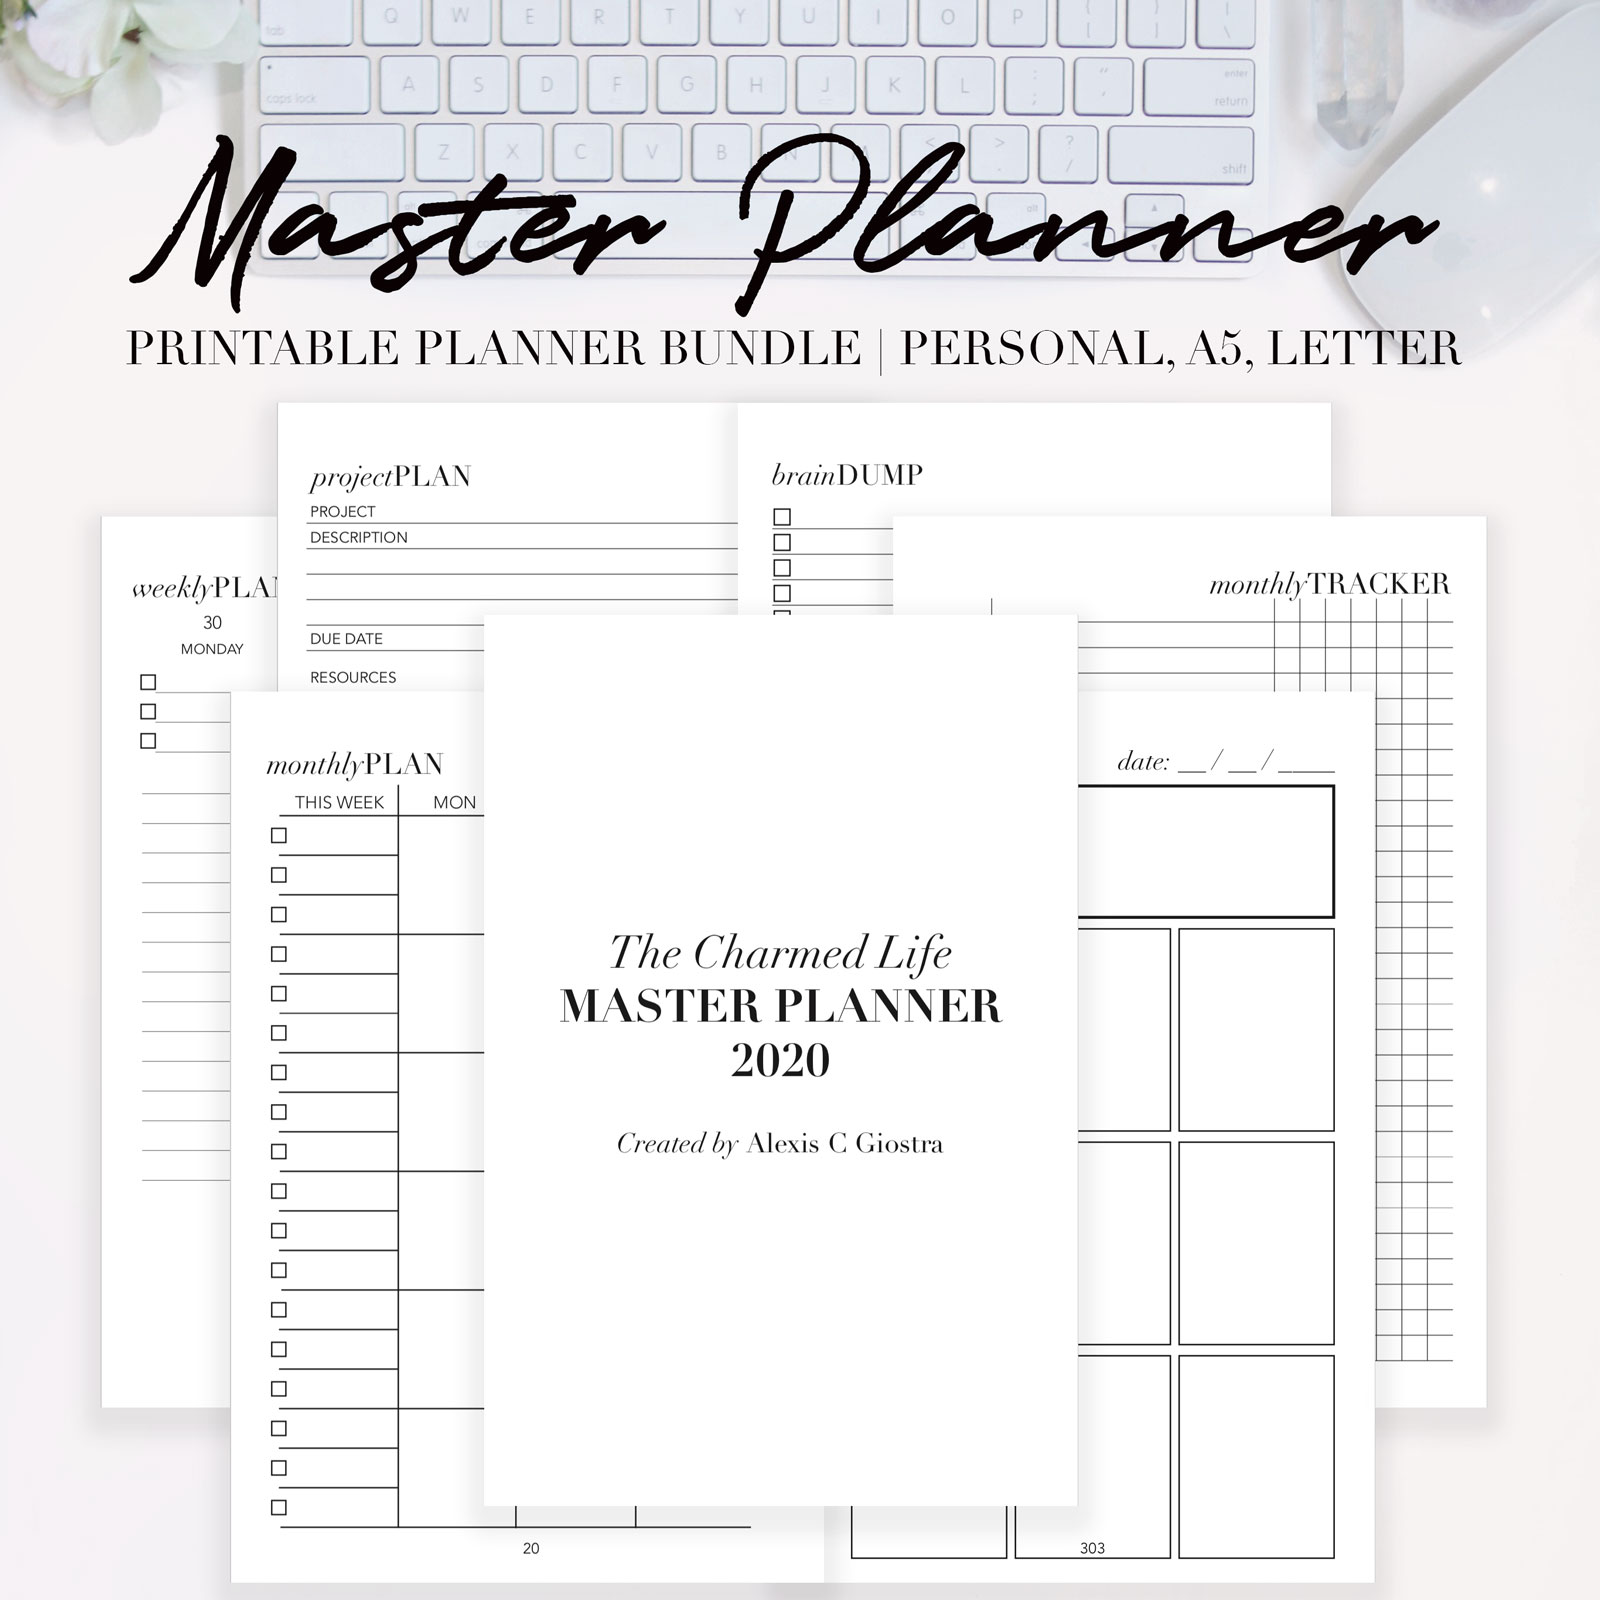 Cover Letter For Demand Planner: 2020 MASTER PLANNER {Printable Personal, A5, Letter